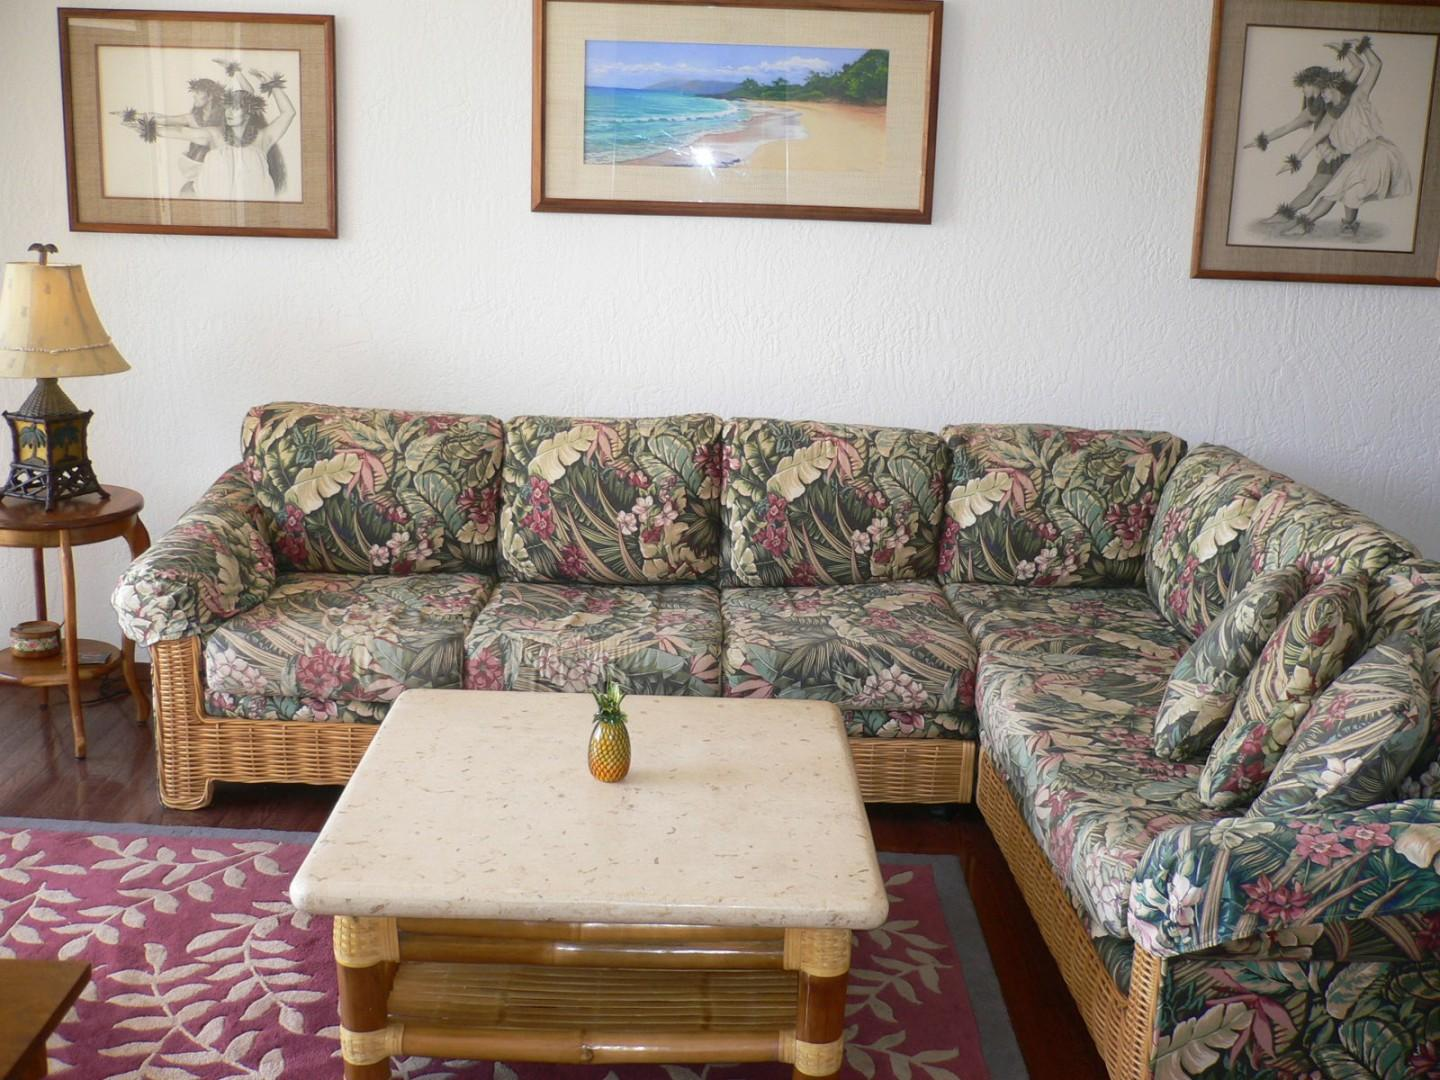 Comfortable furnishings in the living space.